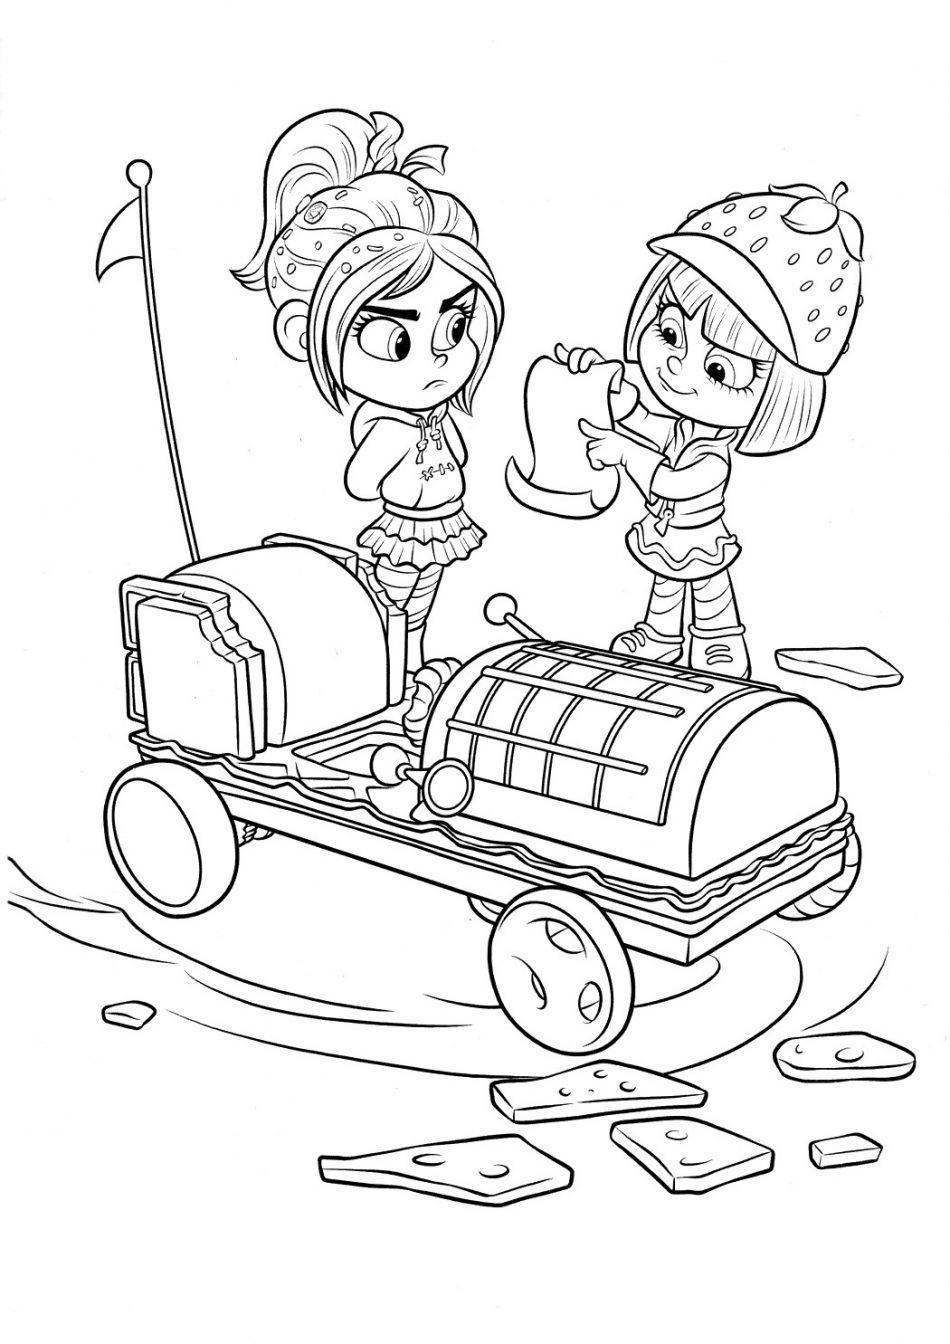 Disney Taffyta And Vanellope Coloring Page In 2020 Disney